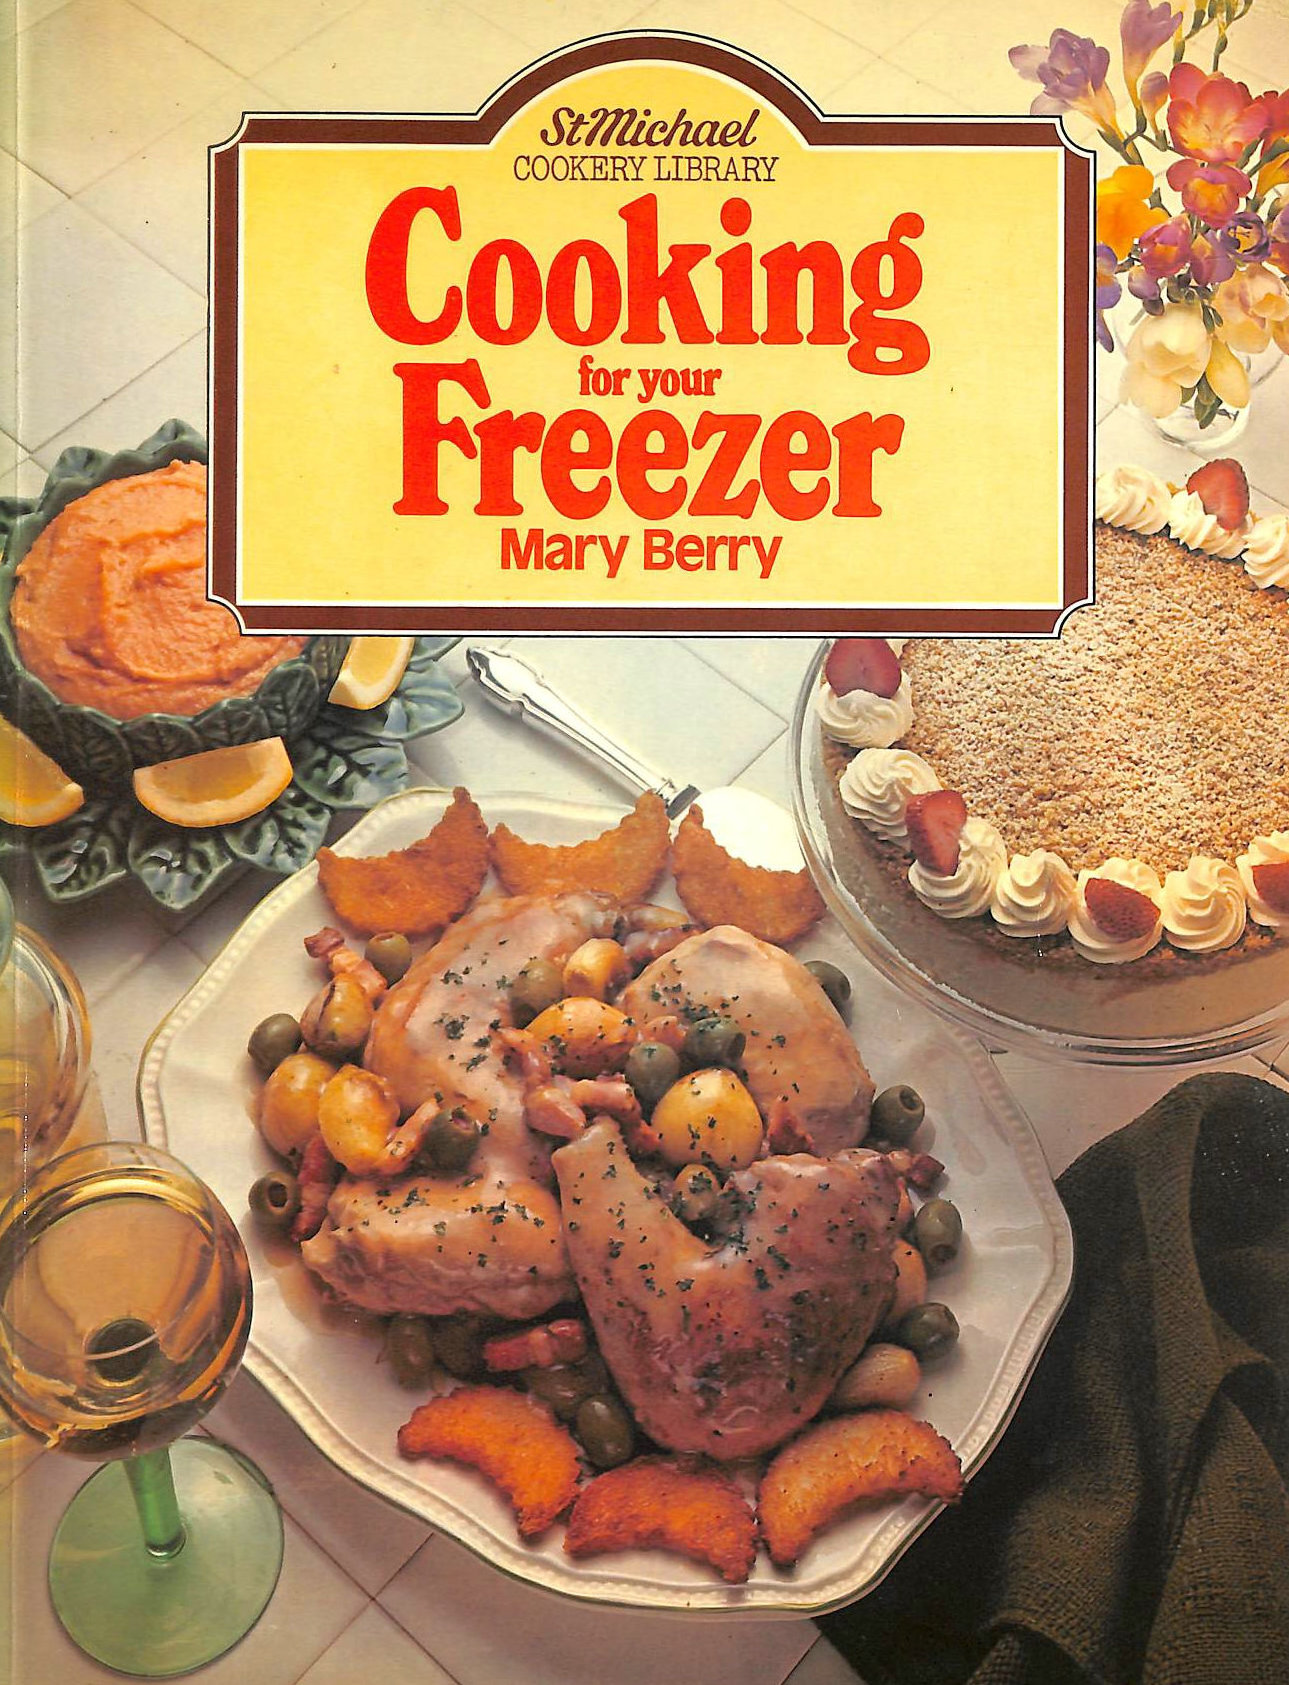 Image for Cooking for your Freezer (St. Michael Cookery Library)